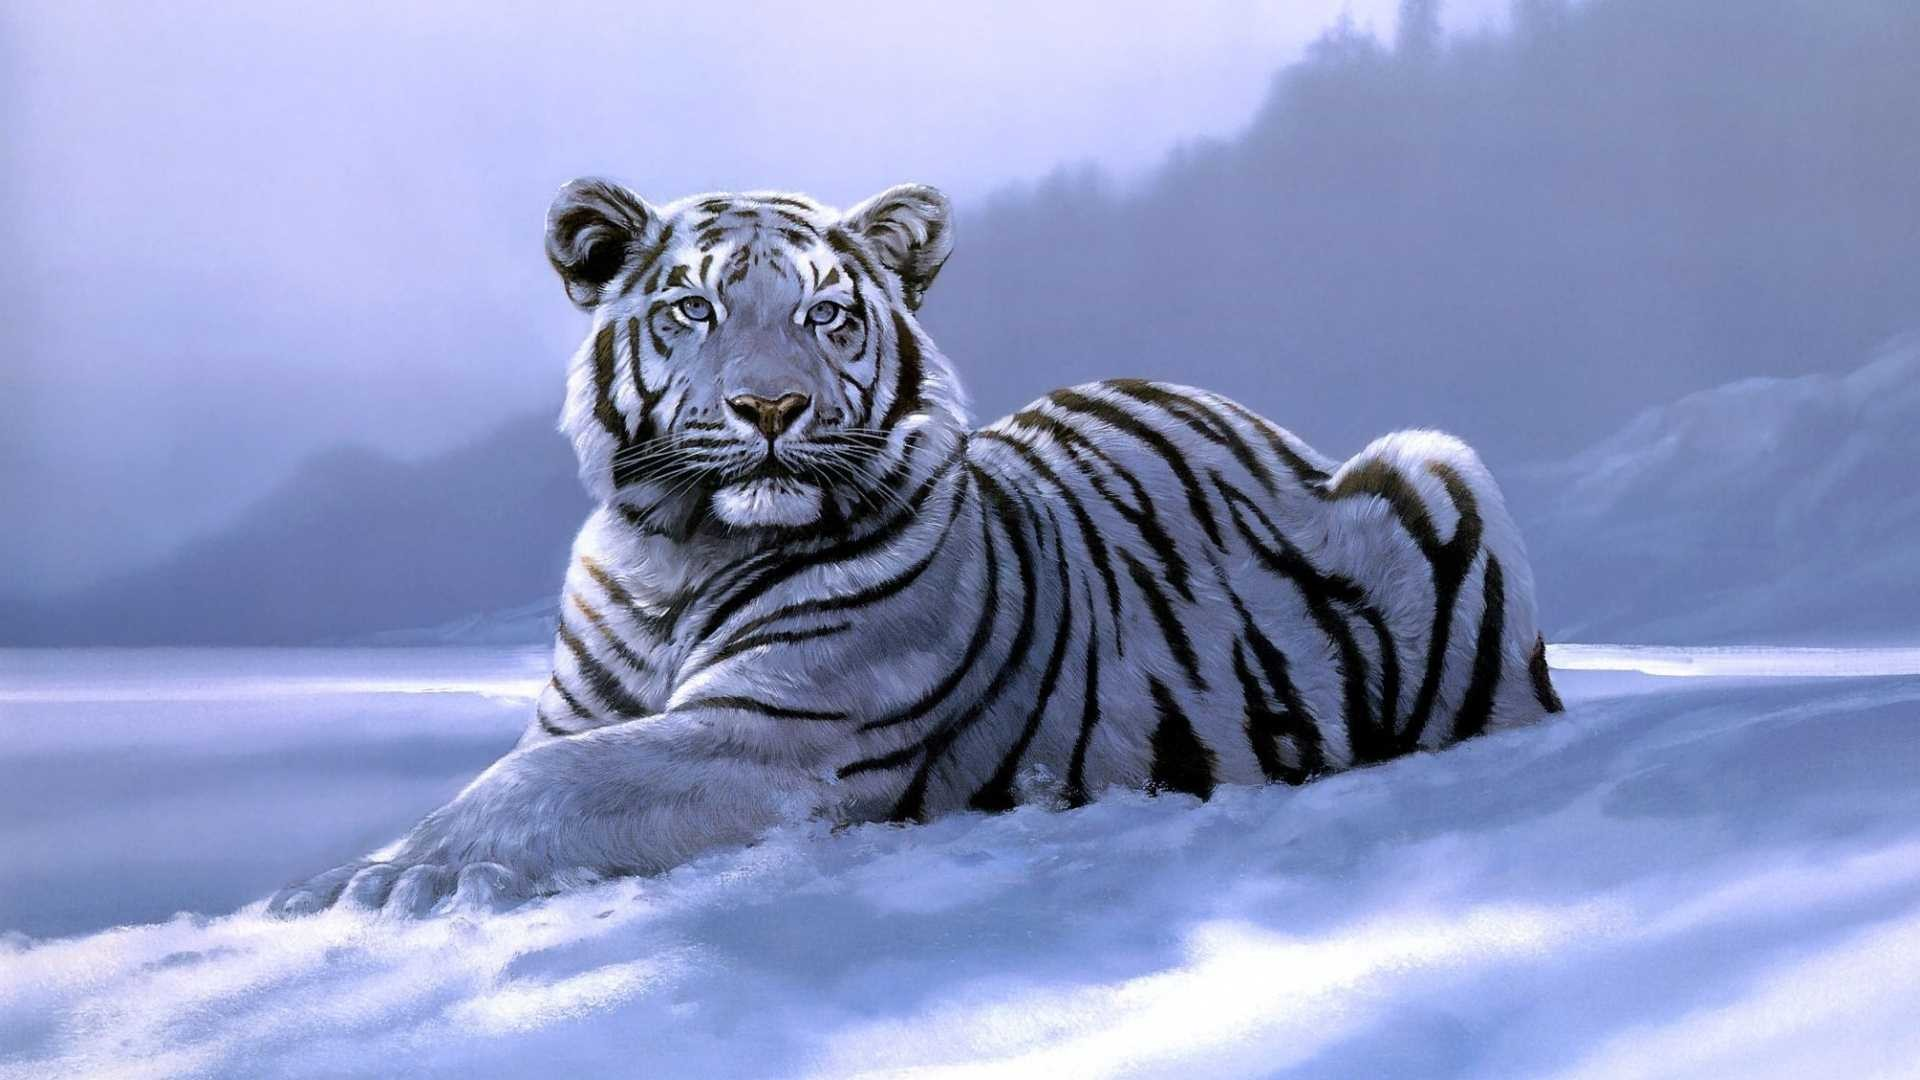 White Tiger Wallpaper Hd 59 Pictures